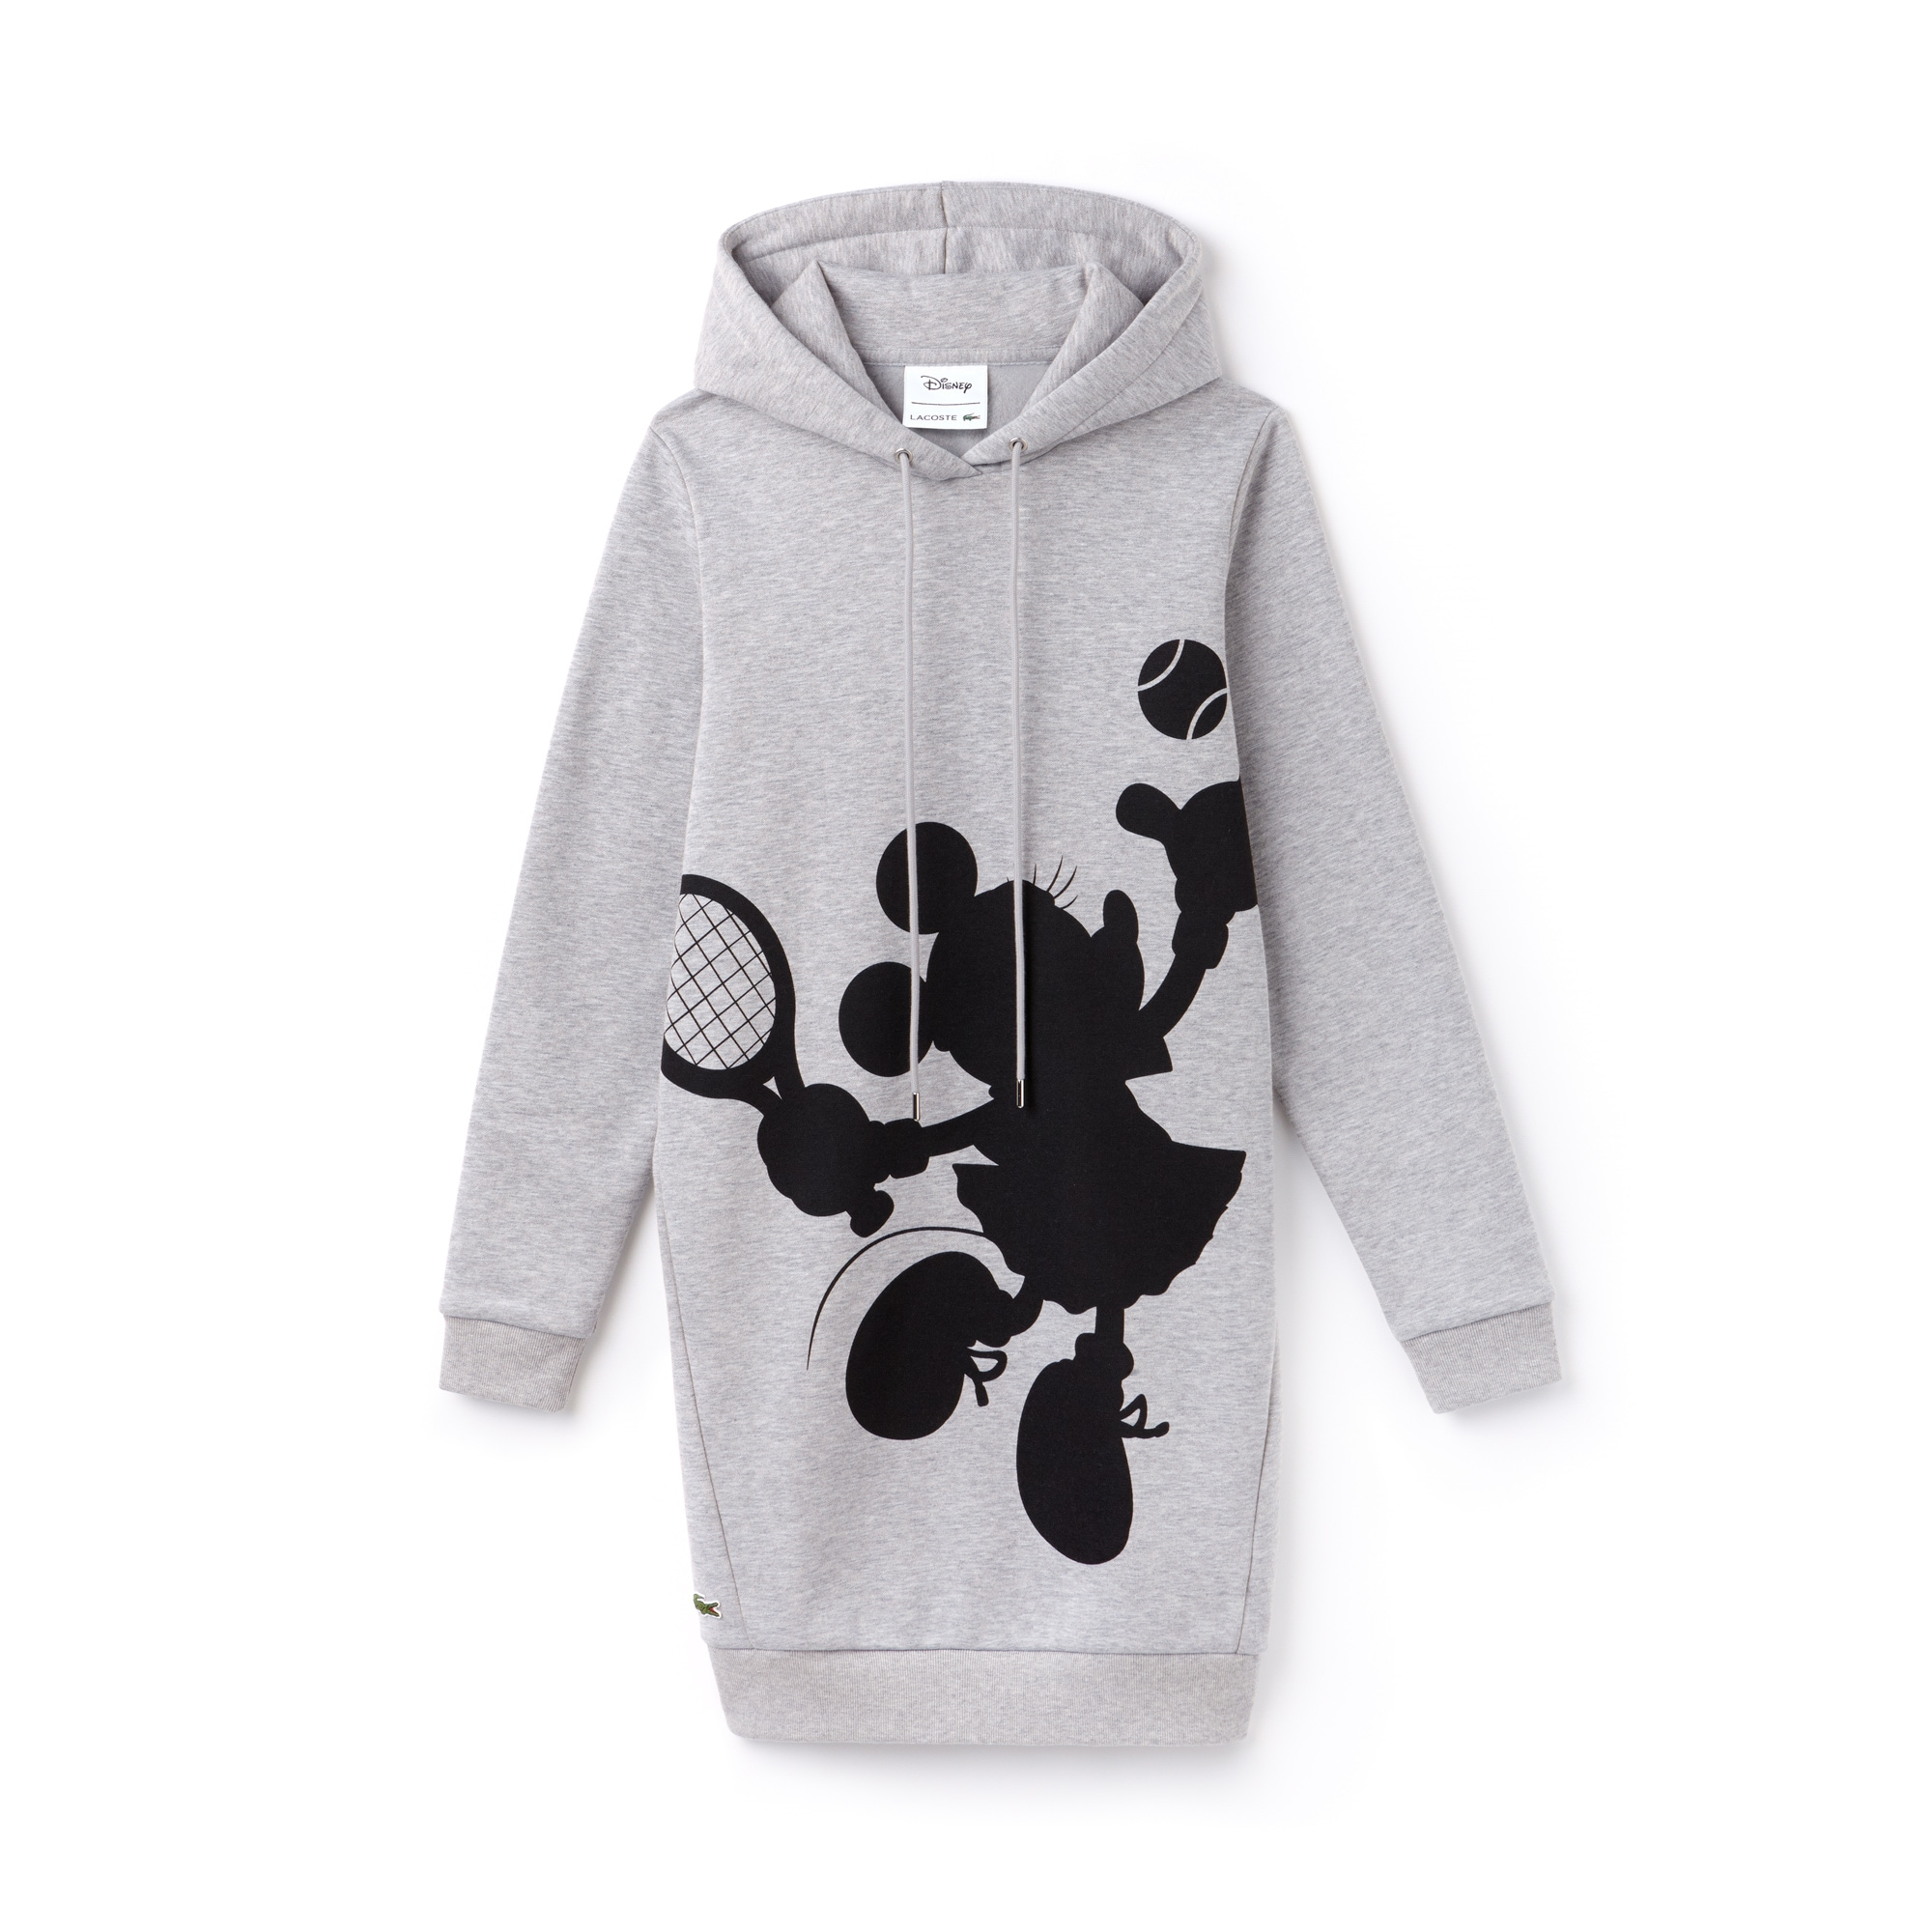 Women's Hooded Disney Minnie Print Fleece Sweatshirt Dress